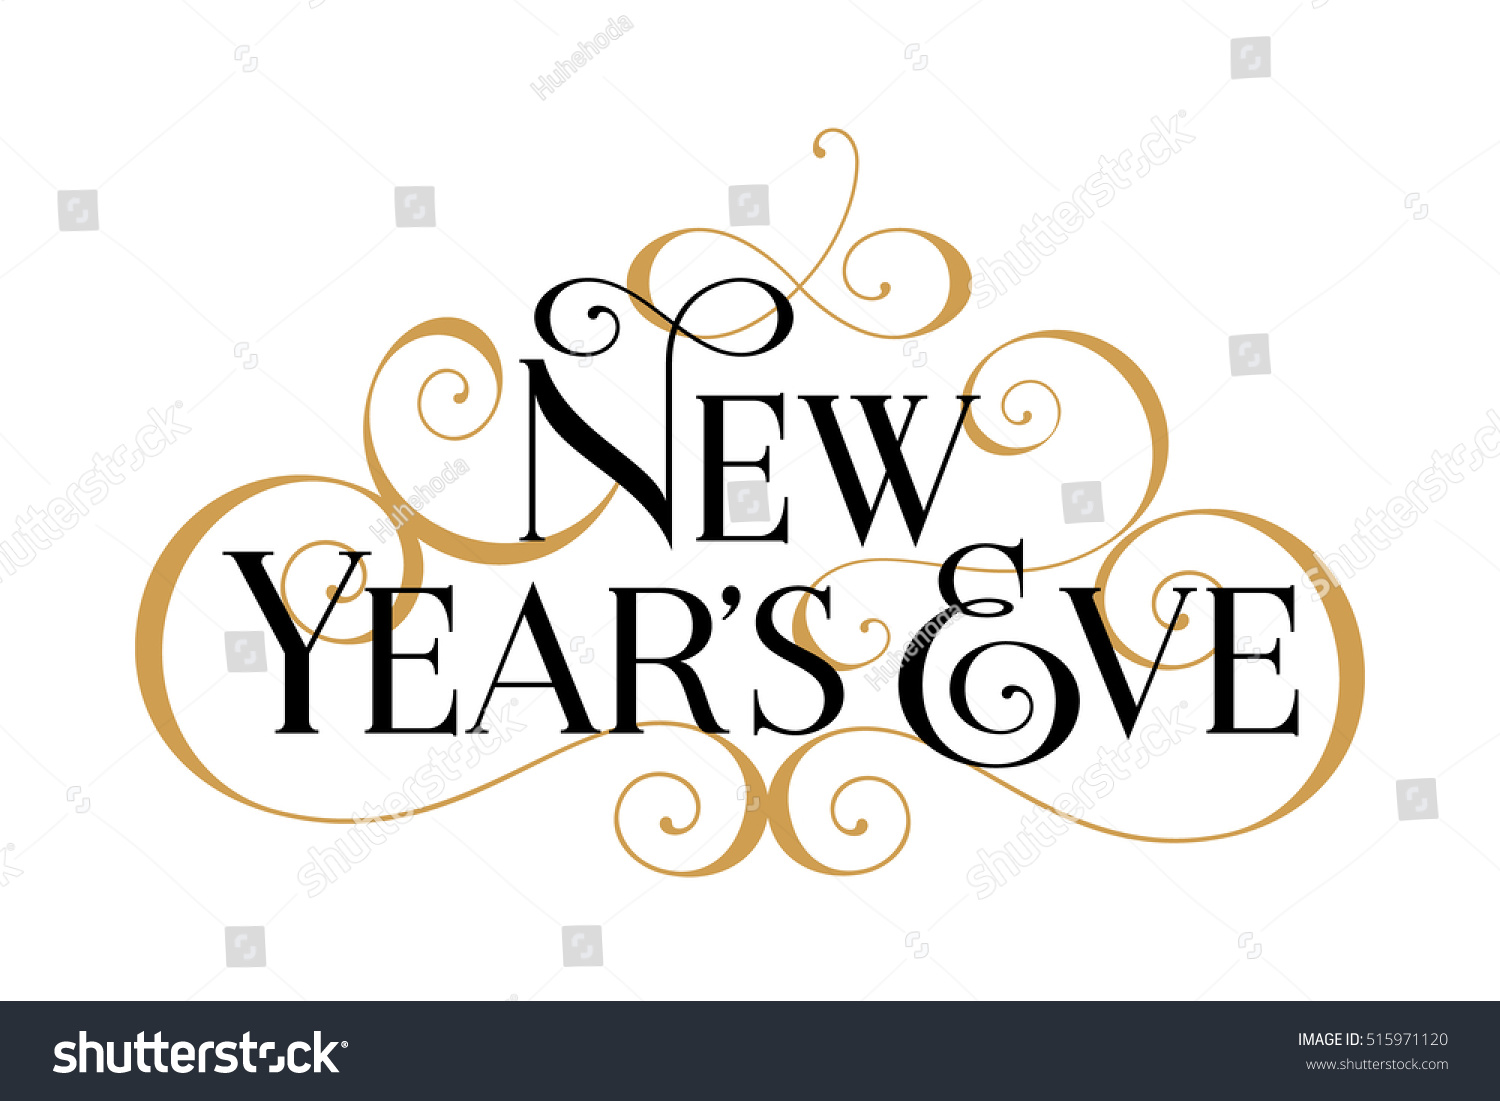 Years cilpart extremely creative. 2018 clipart new year's eve